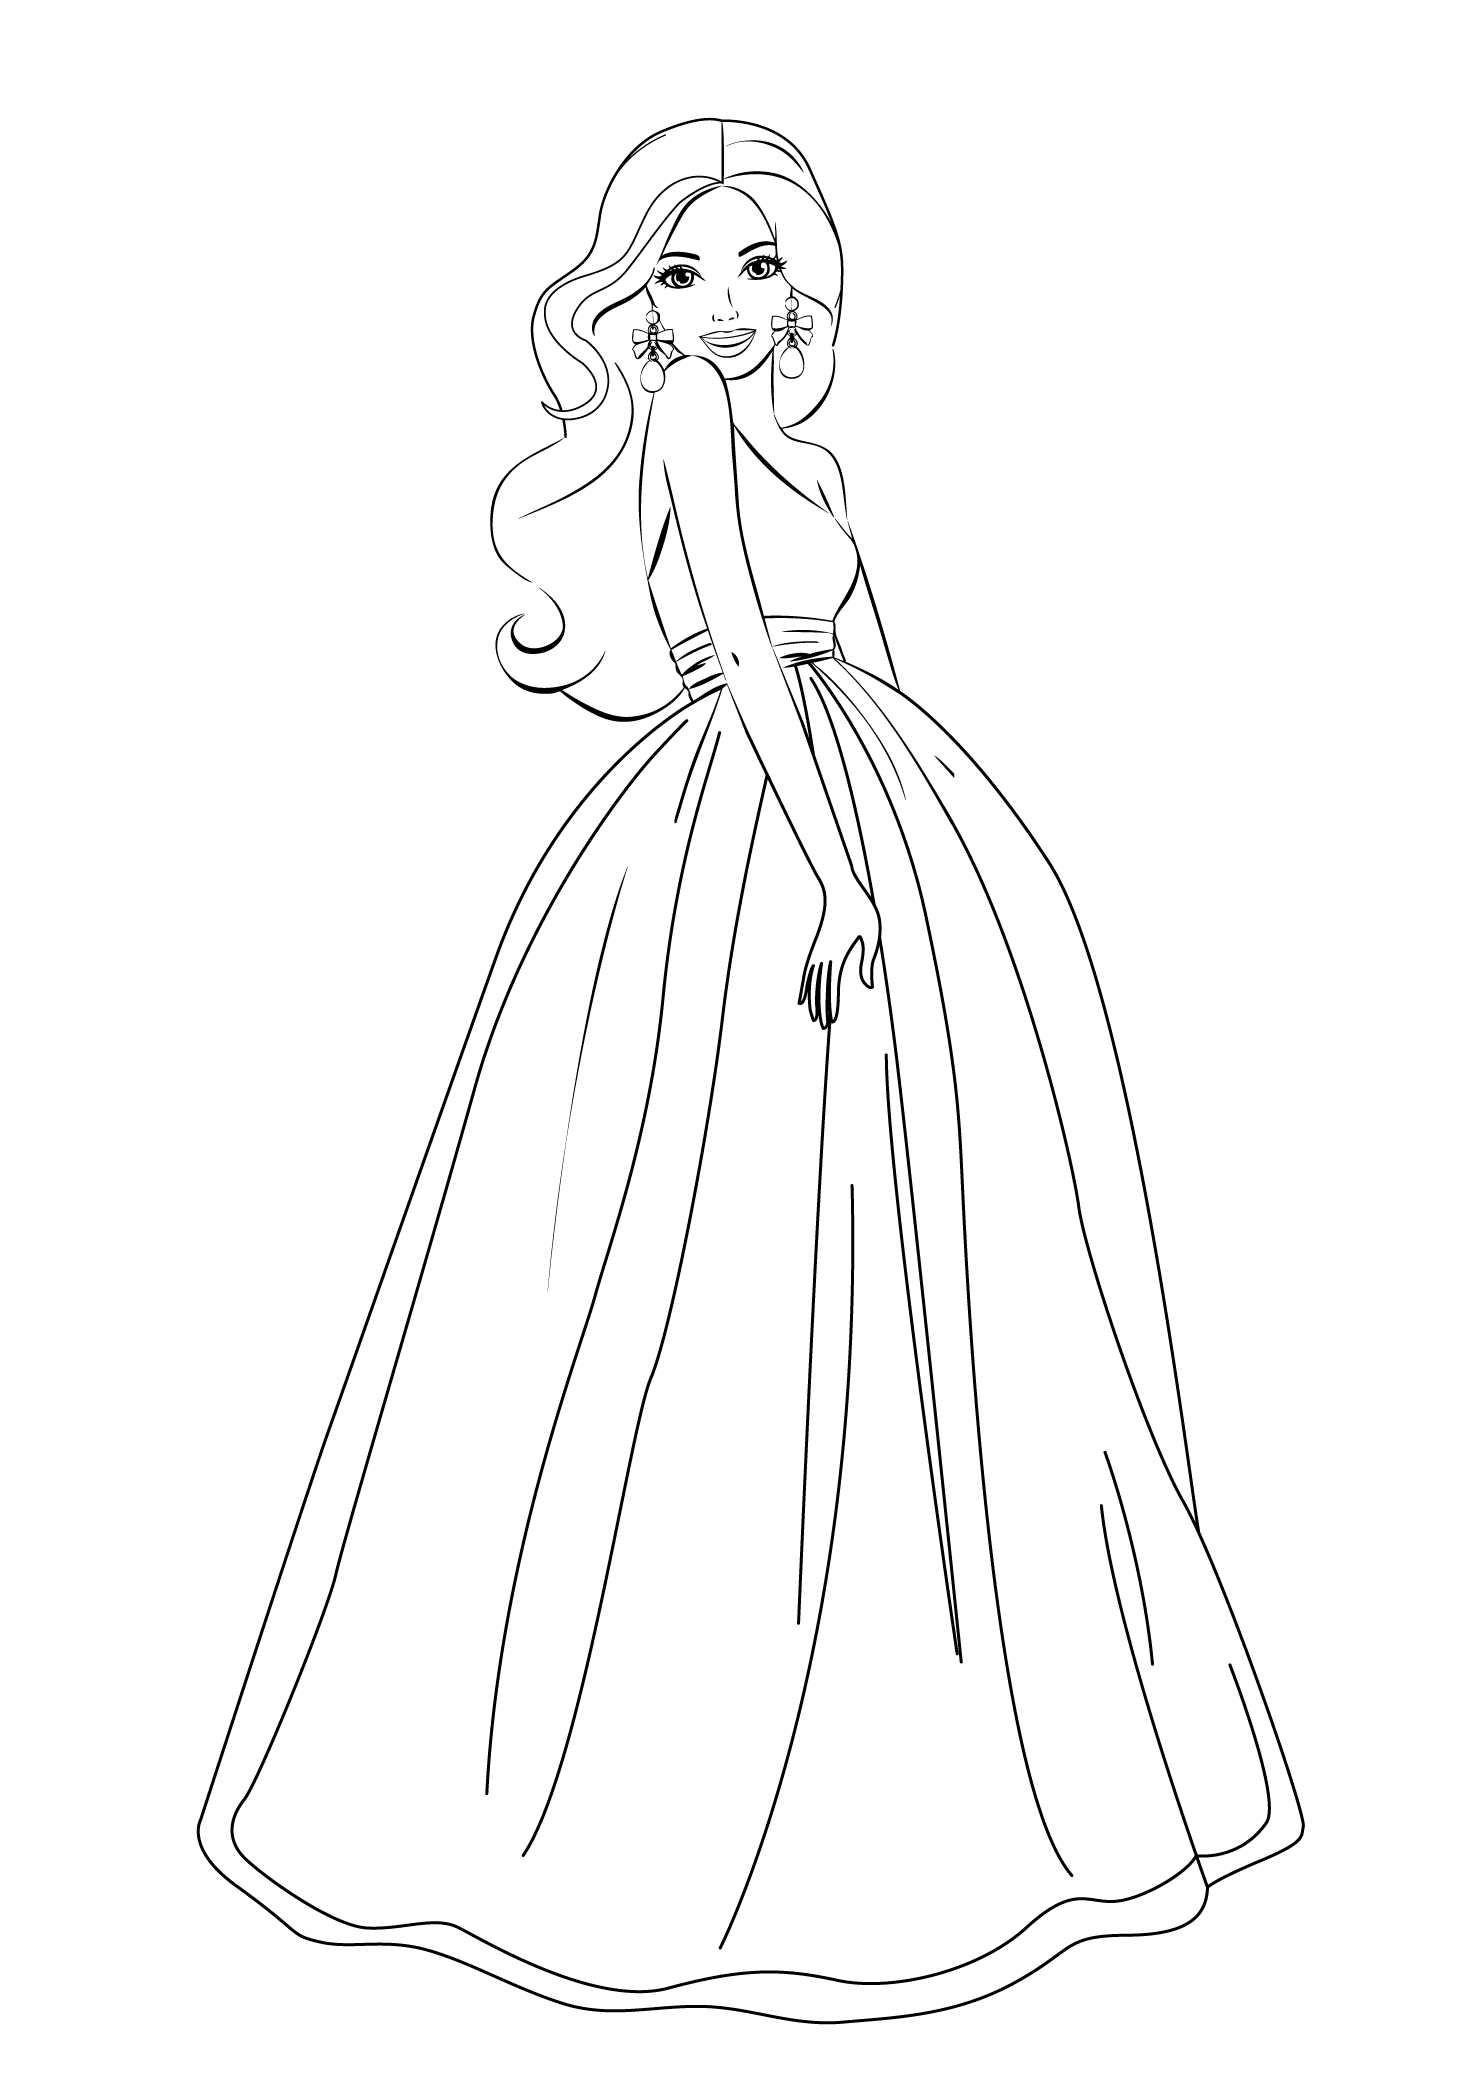 Barbie Coloring Pages For Girls Free Printable | Barbie | Barbie - Free Printable Barbie Coloring Pages